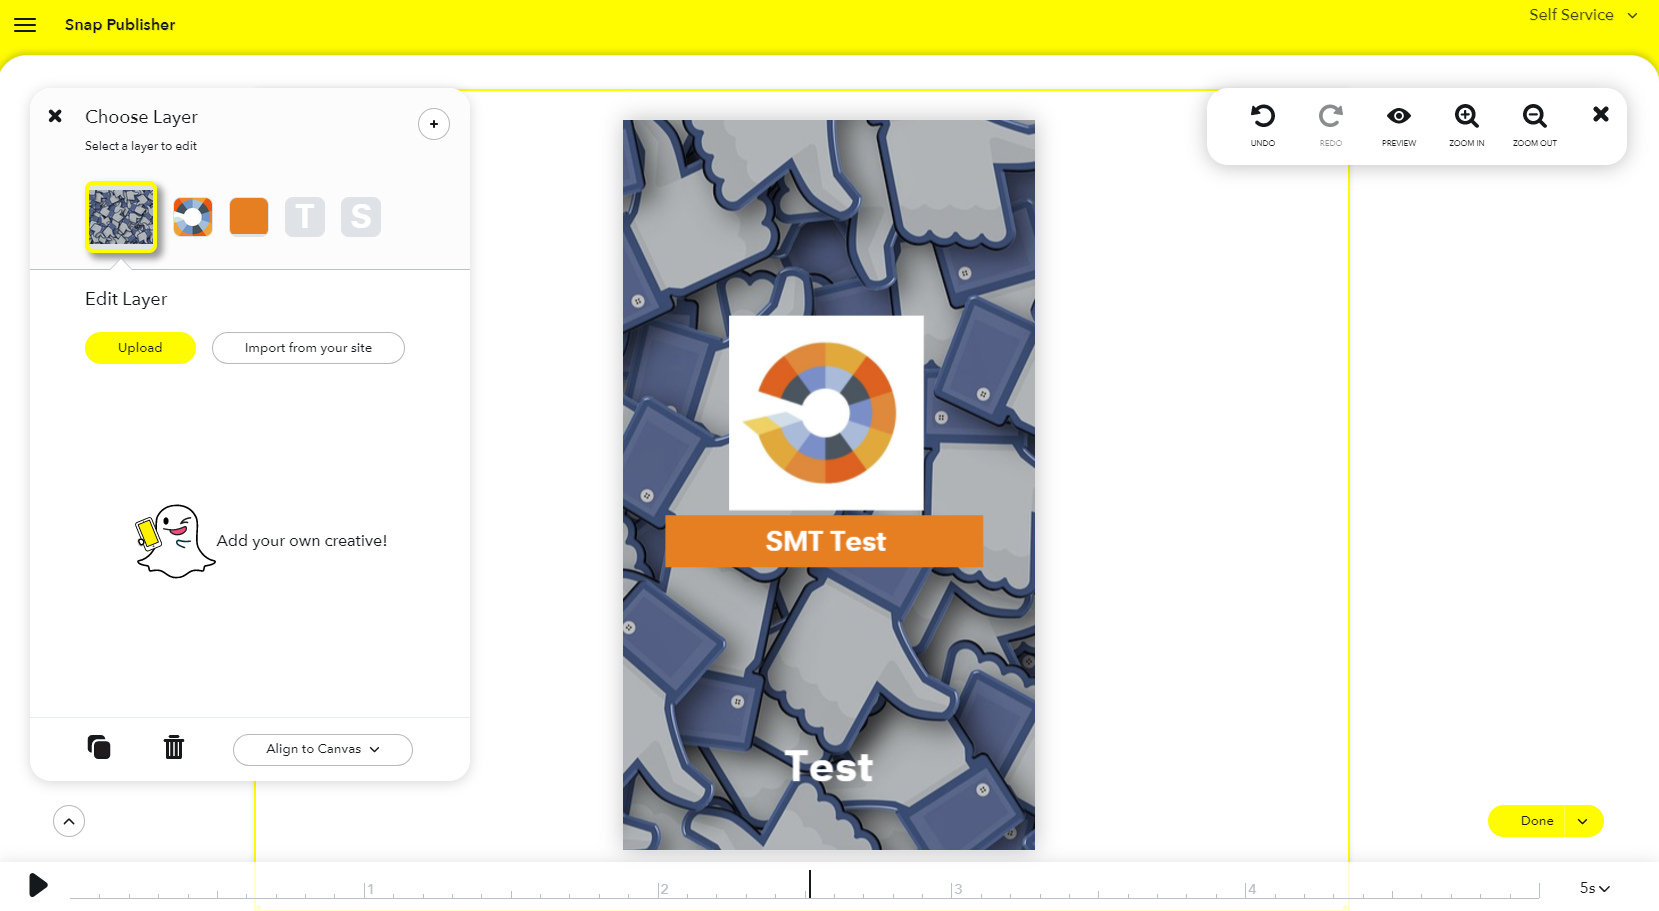 Snap Inc. Launches Snap Publisher Ad Creation Tool | Social Media Today